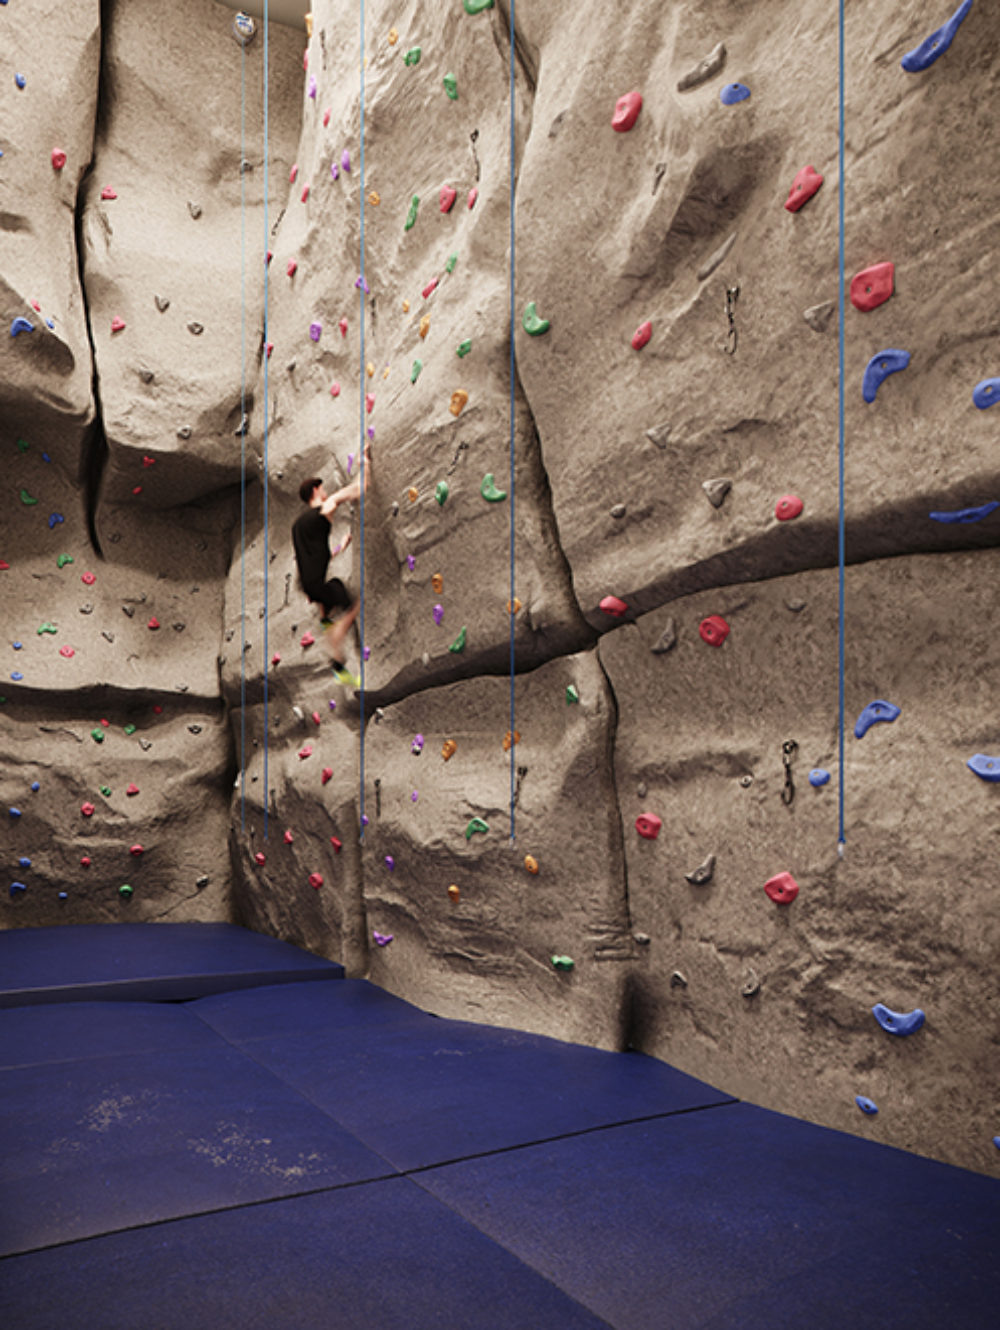 Private climbing wall with multiple safety lines and padded flooring in the Waterline Square residences in New York City.